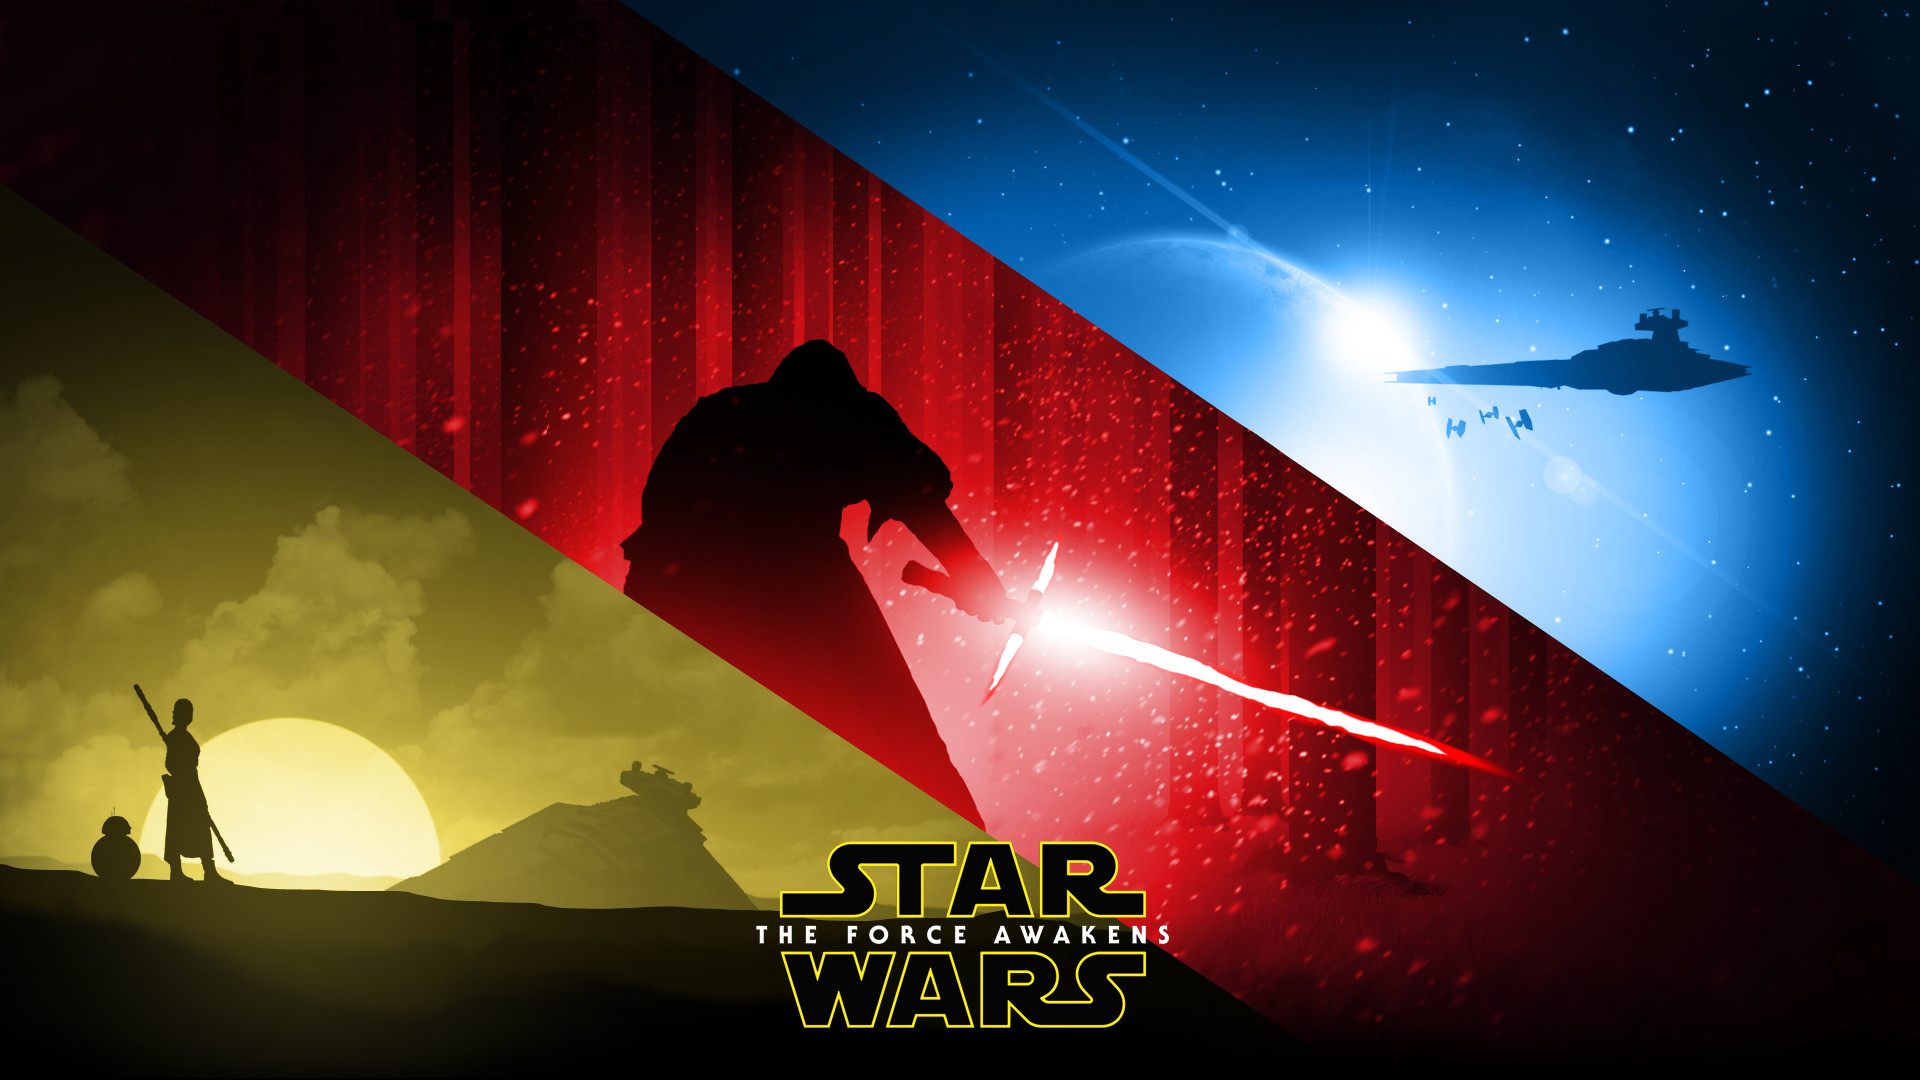 Star Wars The Force Awakens Background For Desktop Wallpaper 1920 x 1080 px  623.08 KB sith